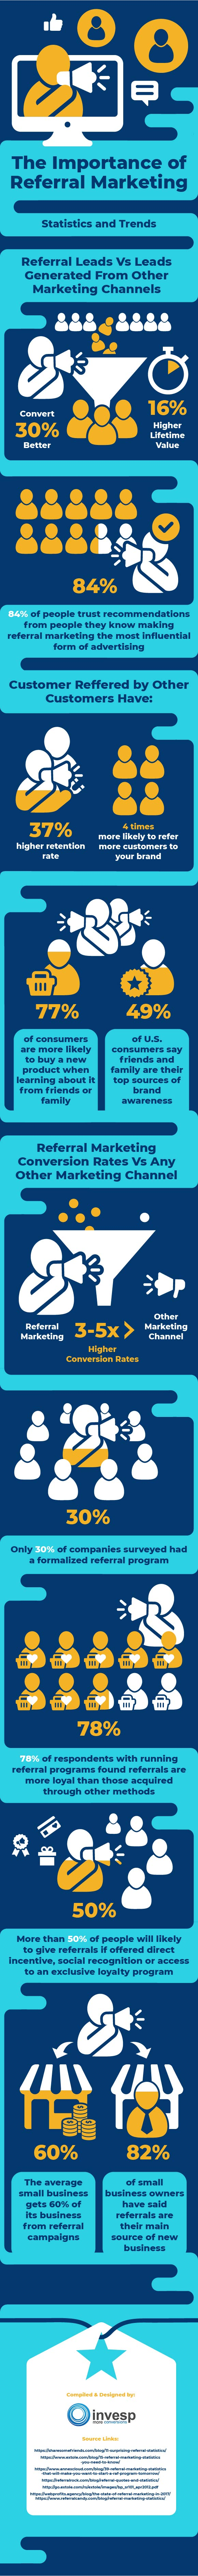 The importance of referral marketing – Statistics and Trends